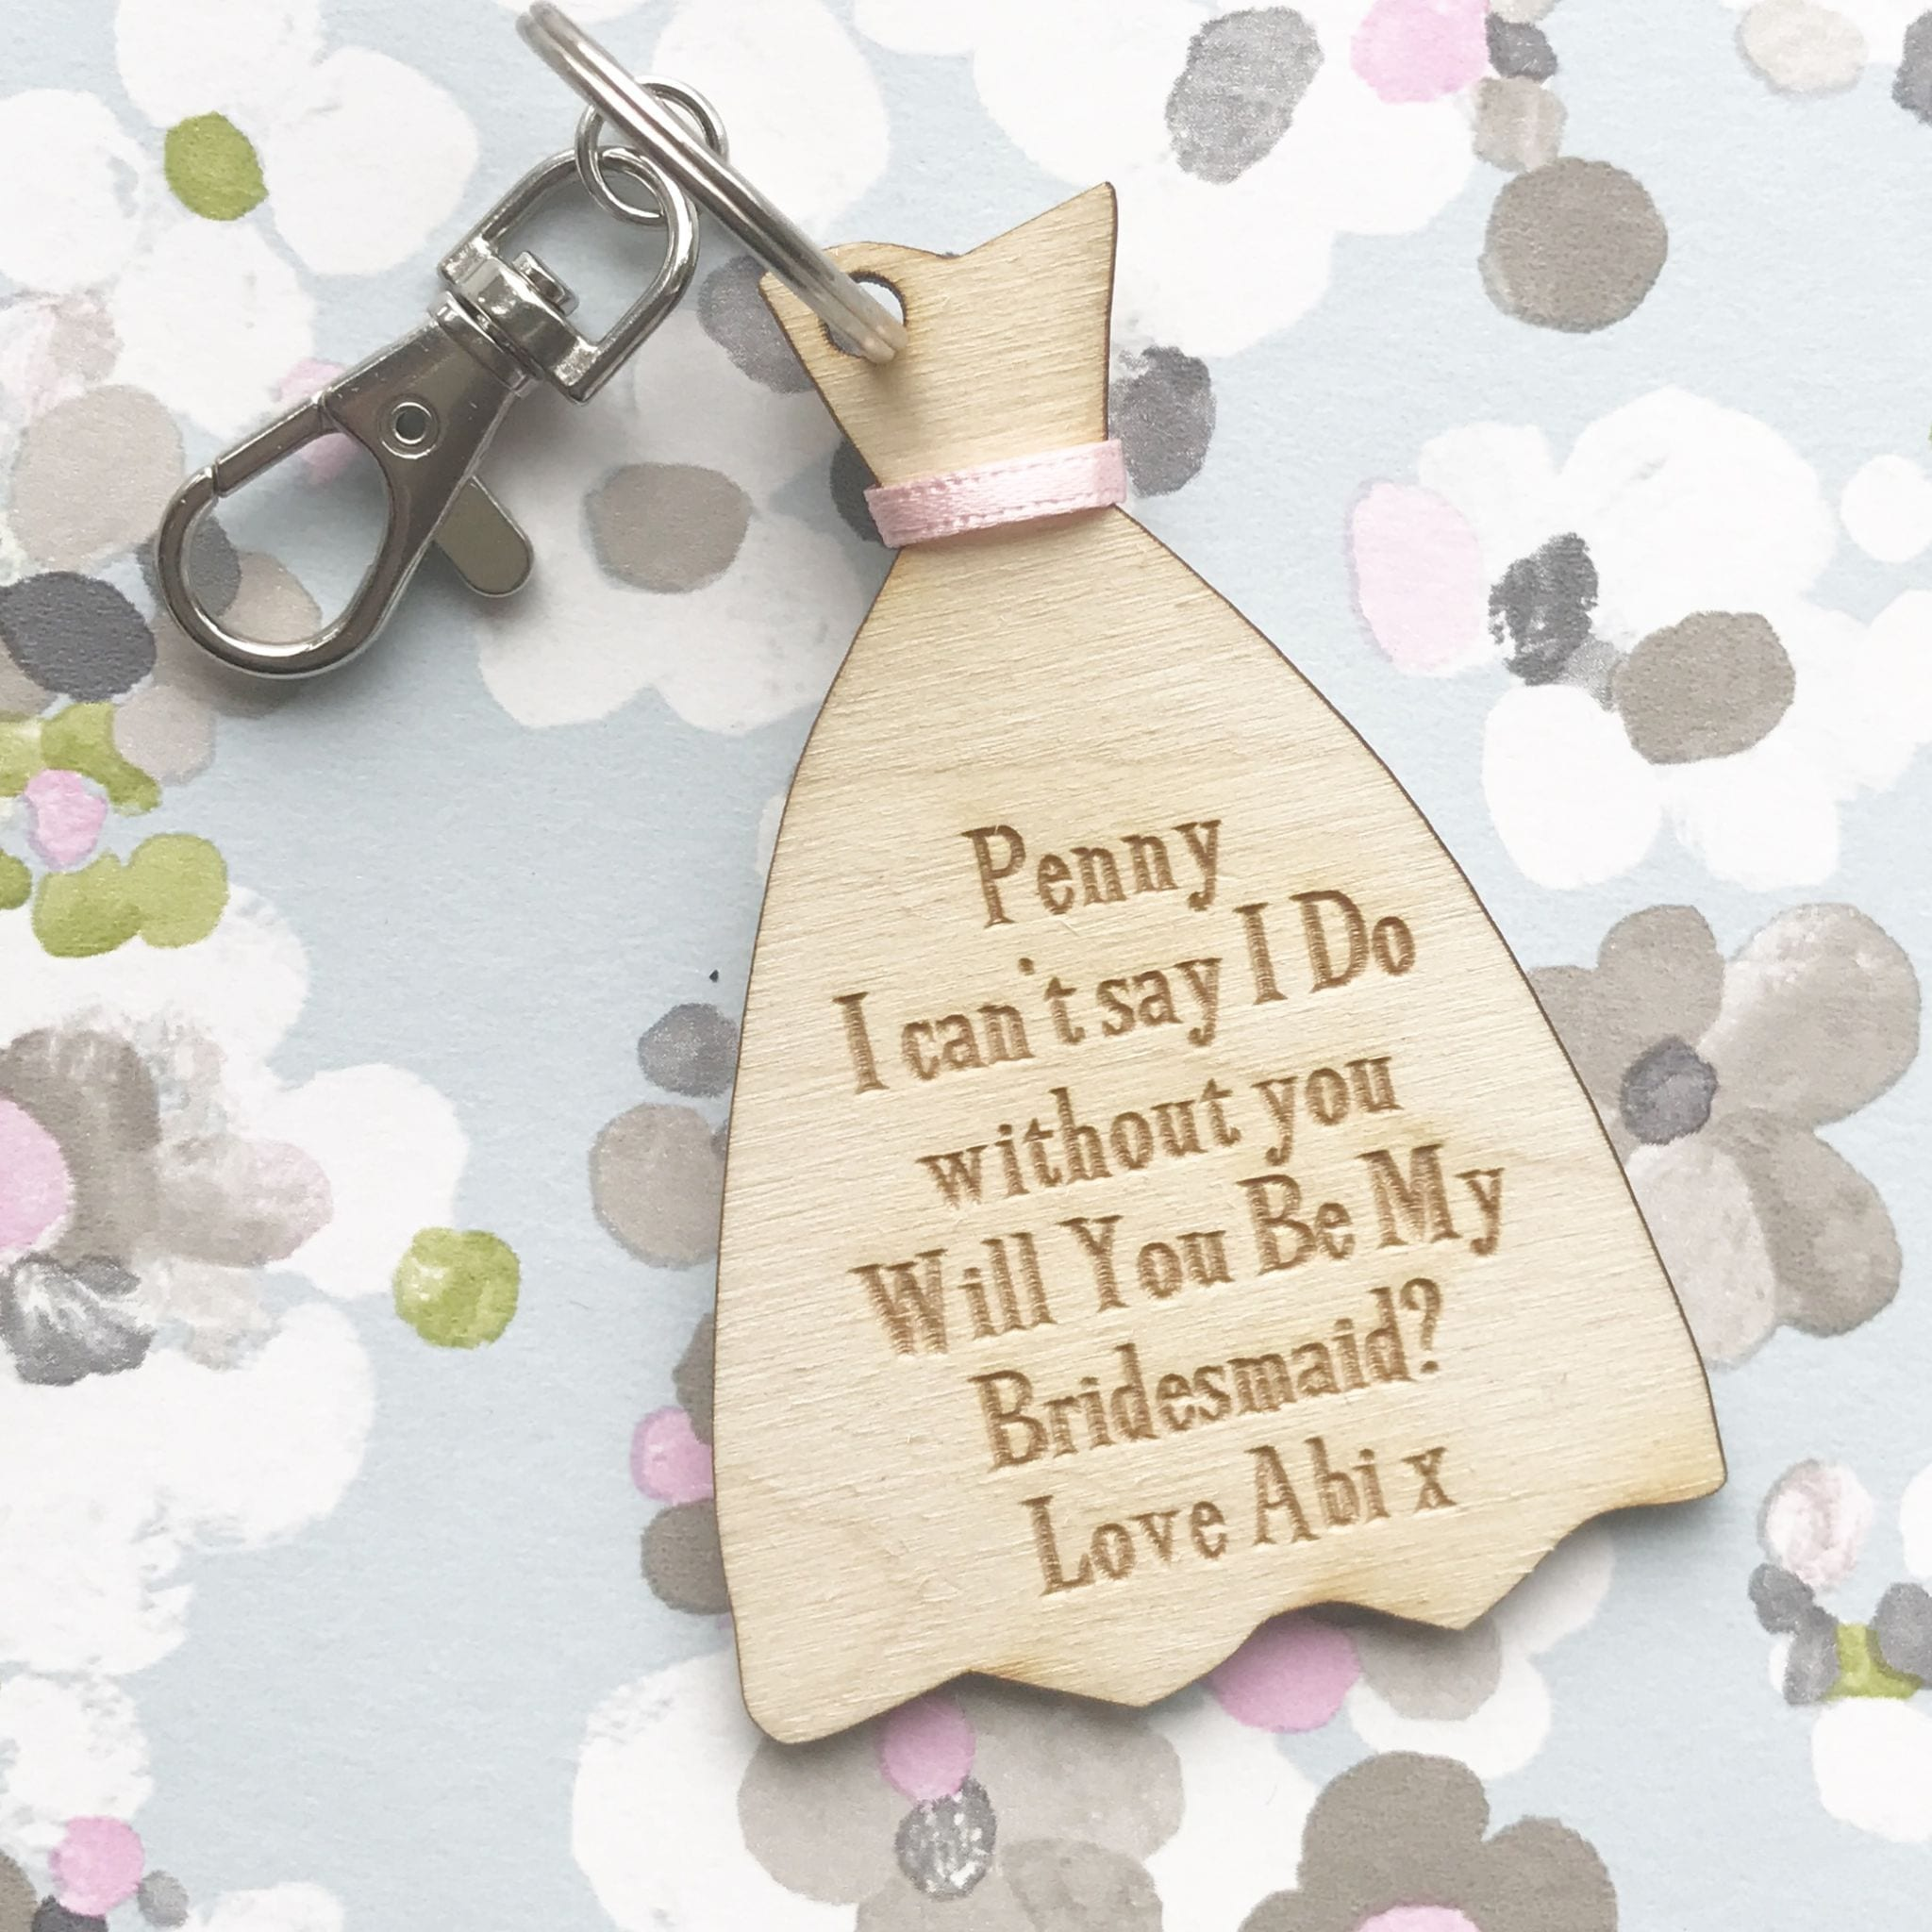 i-can-t-say-i-do-without-you-dress-keyring-or-magnet-20142-p.jpg